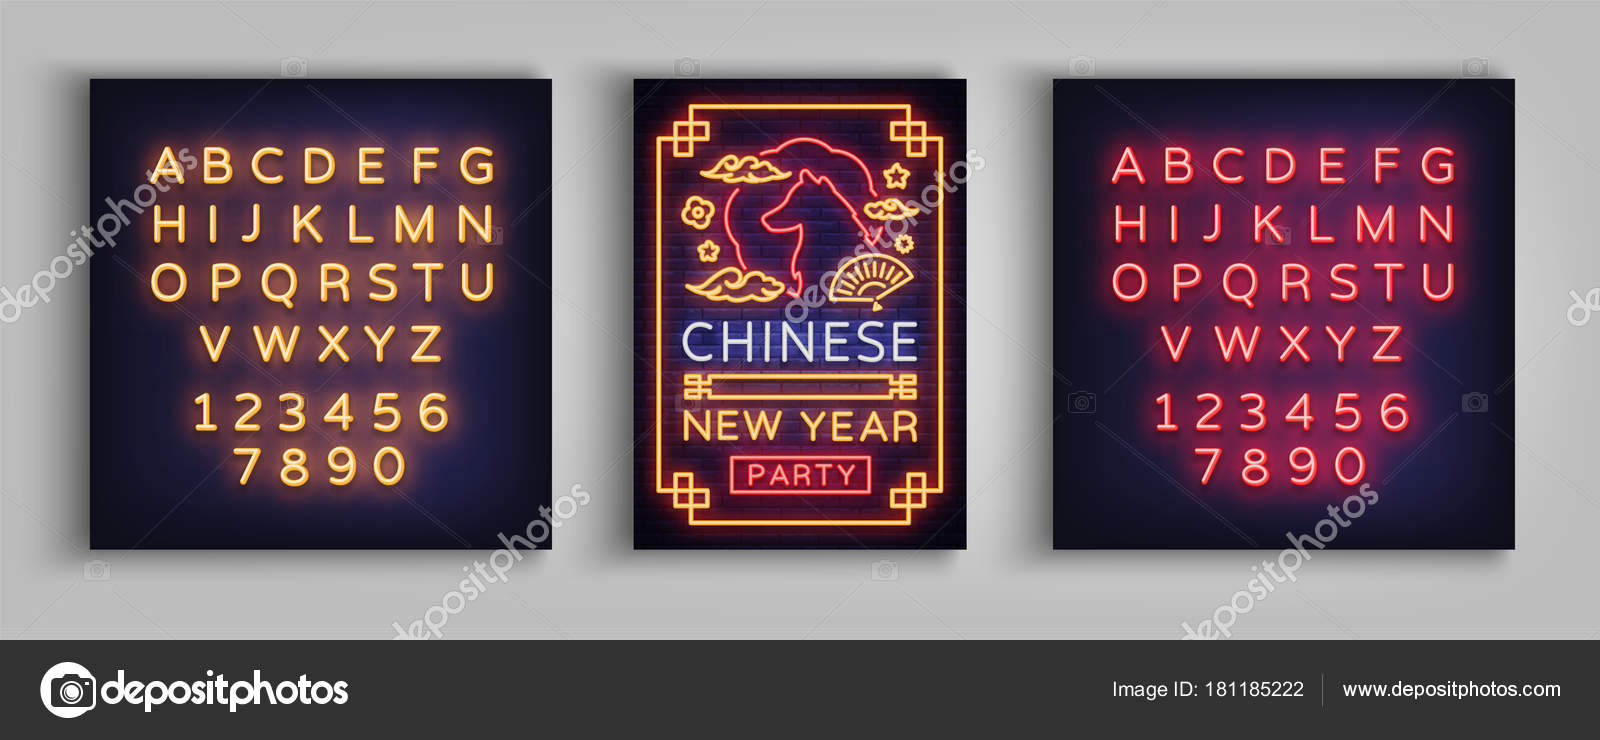 chinese new year 2018 party poster design brochure template neon vibrant banner flyer greeting card an invitation to a party vector illustration